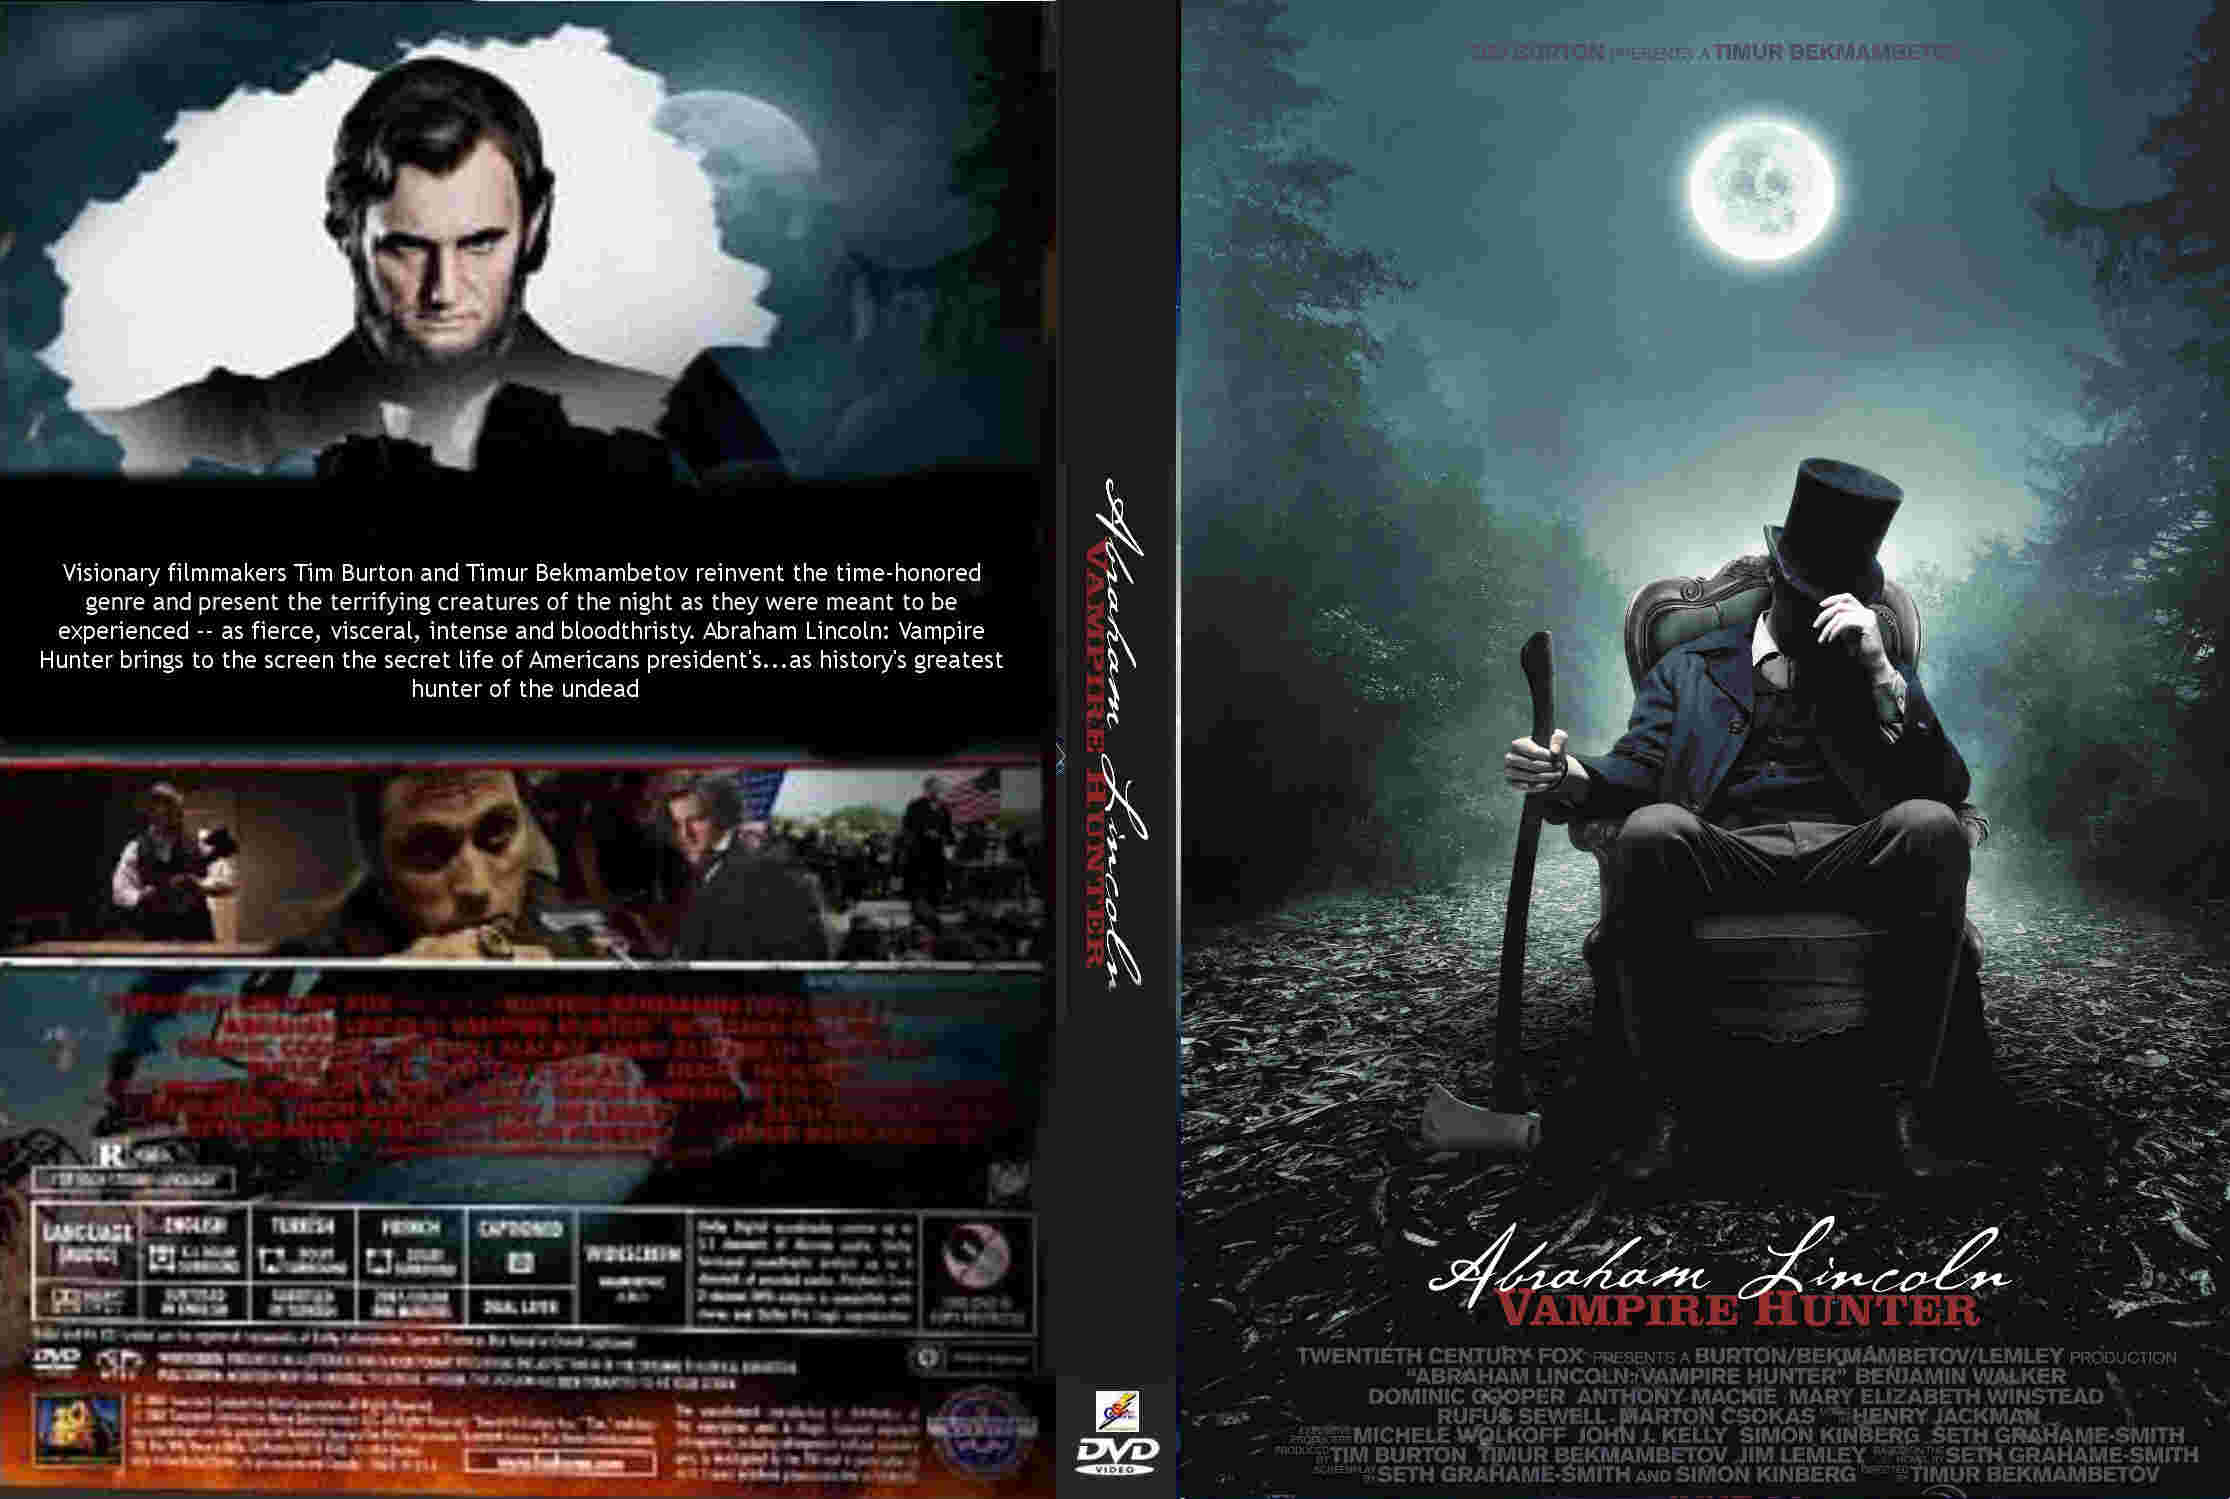 film, ryemovies, ganool movies, 2012, download free, gratis subtitle, terjemah indonesia, Benjamin Walker, Rufus Sewell, Dominic Cooper, Abraham Lincoln, Vampire Hunter